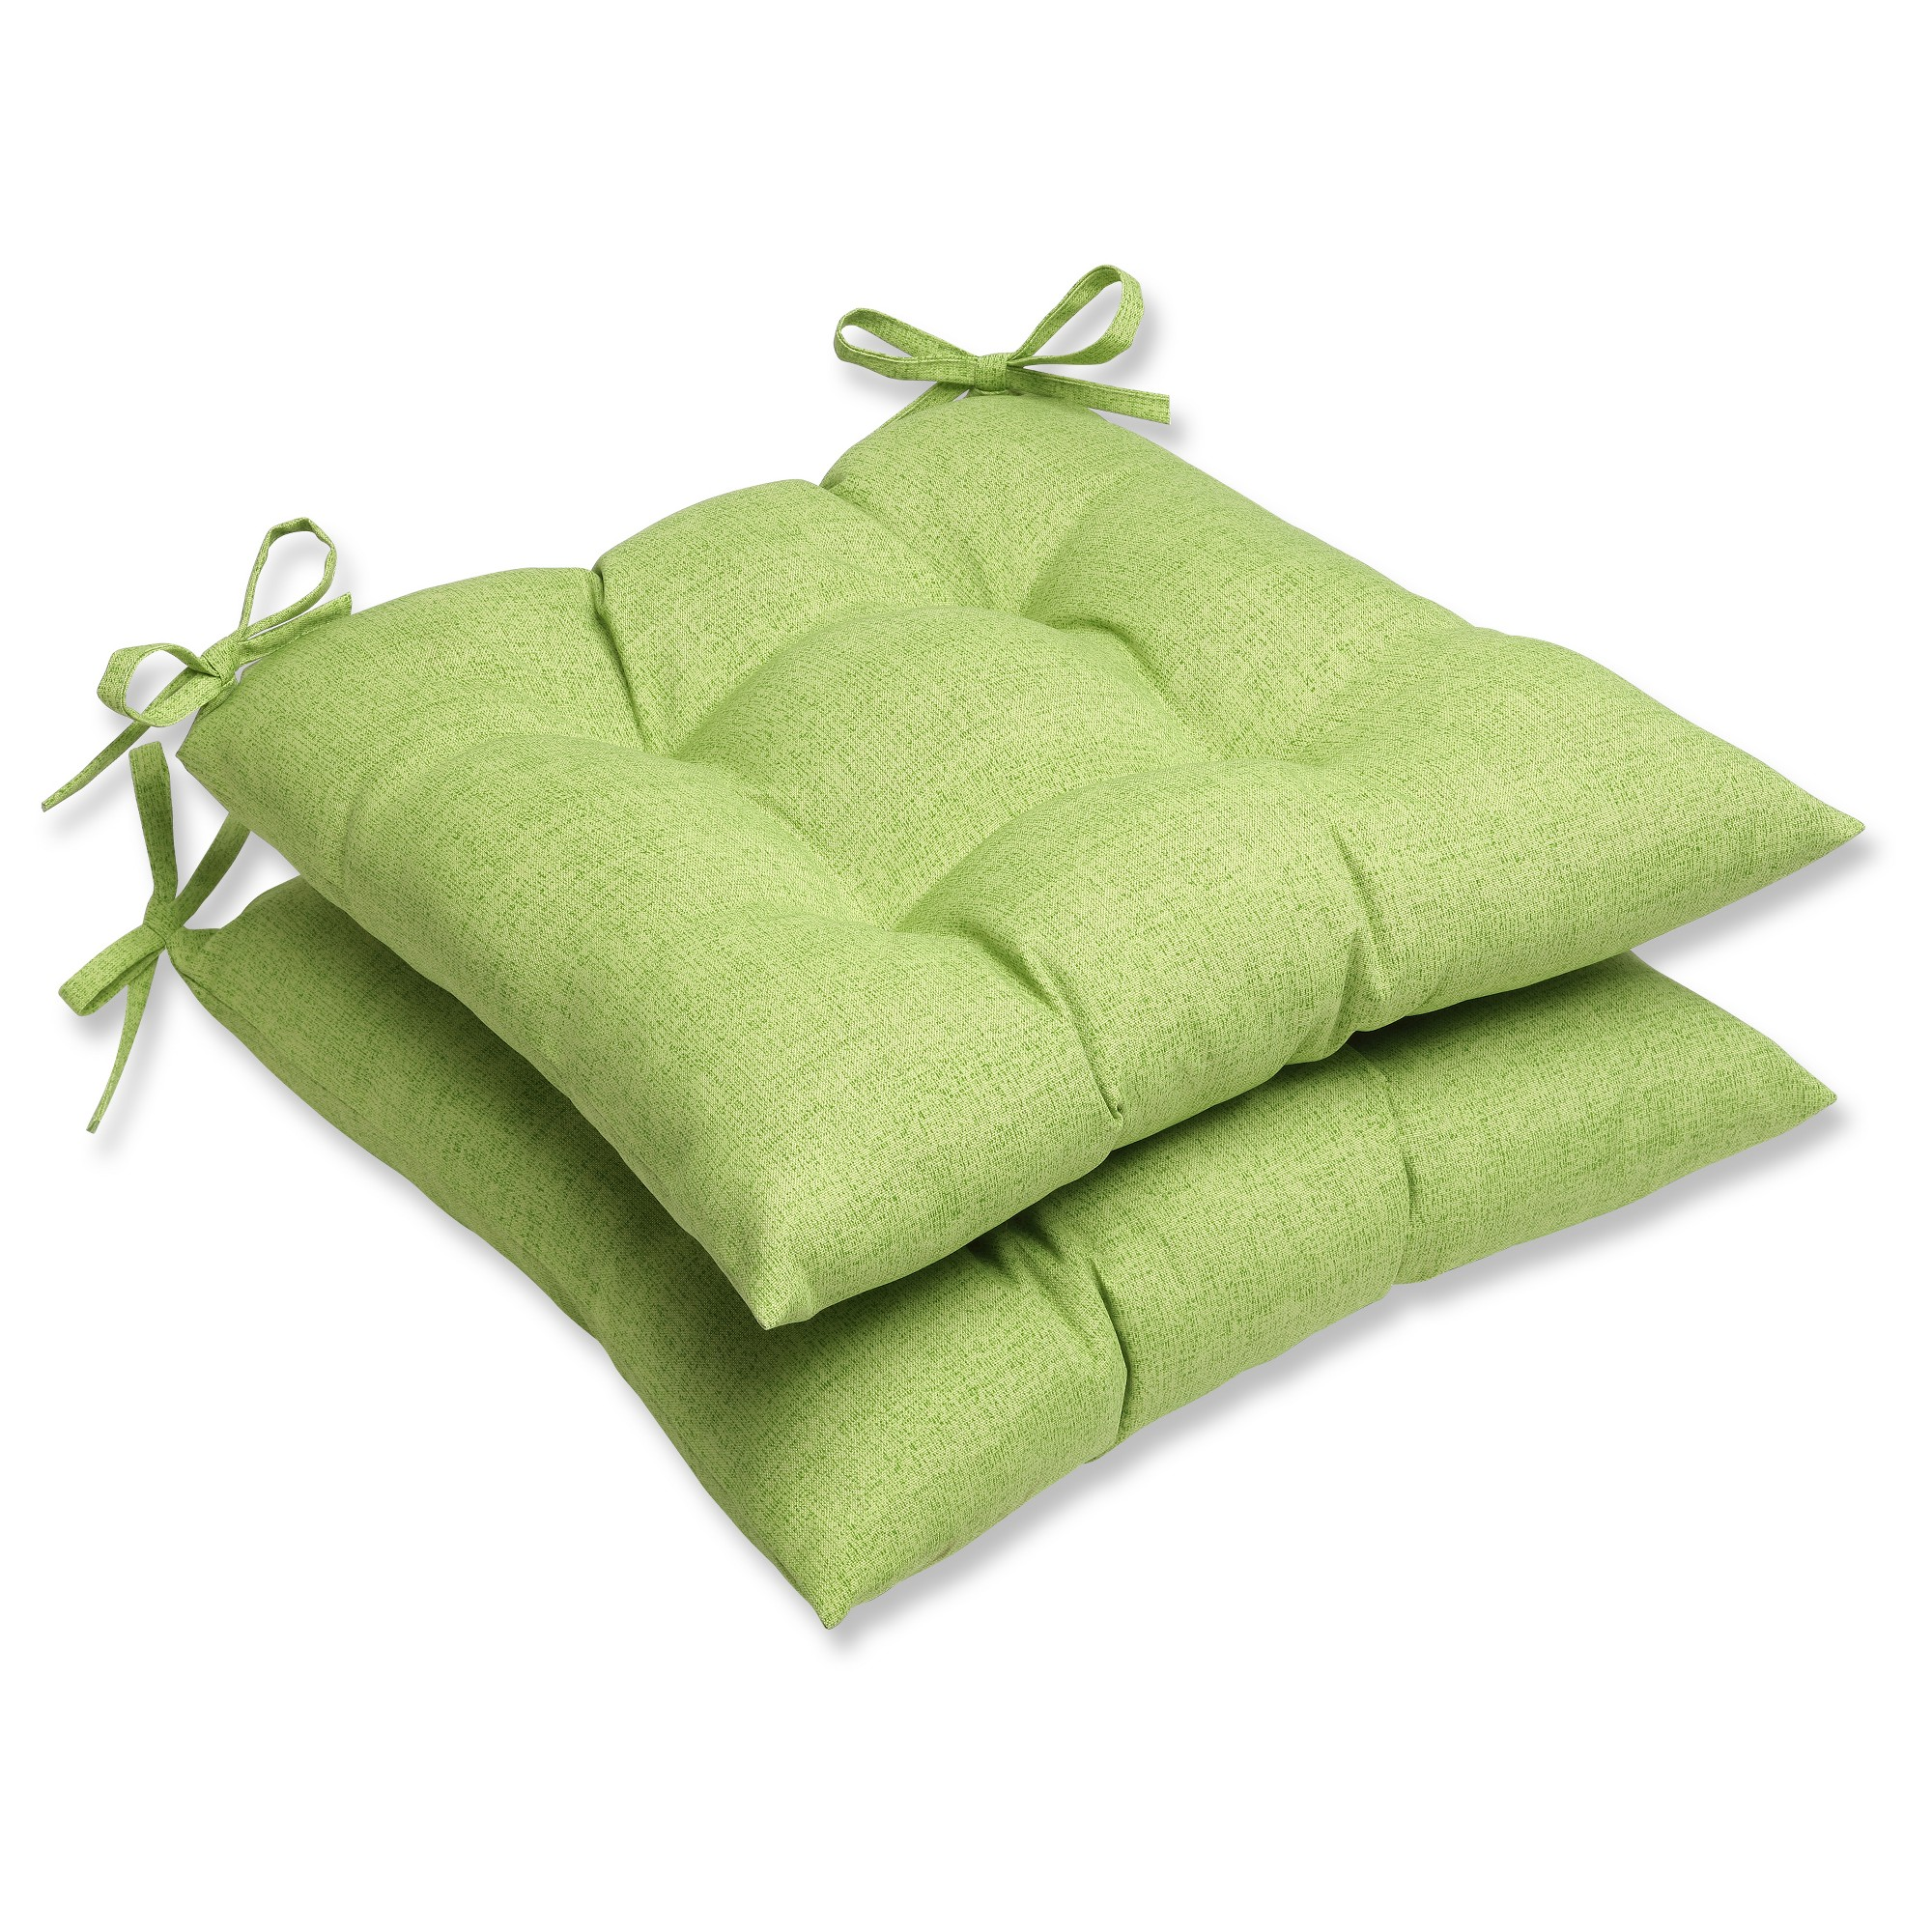 Outdoor 2-Piece Tufted Chair Cushion Set - Green